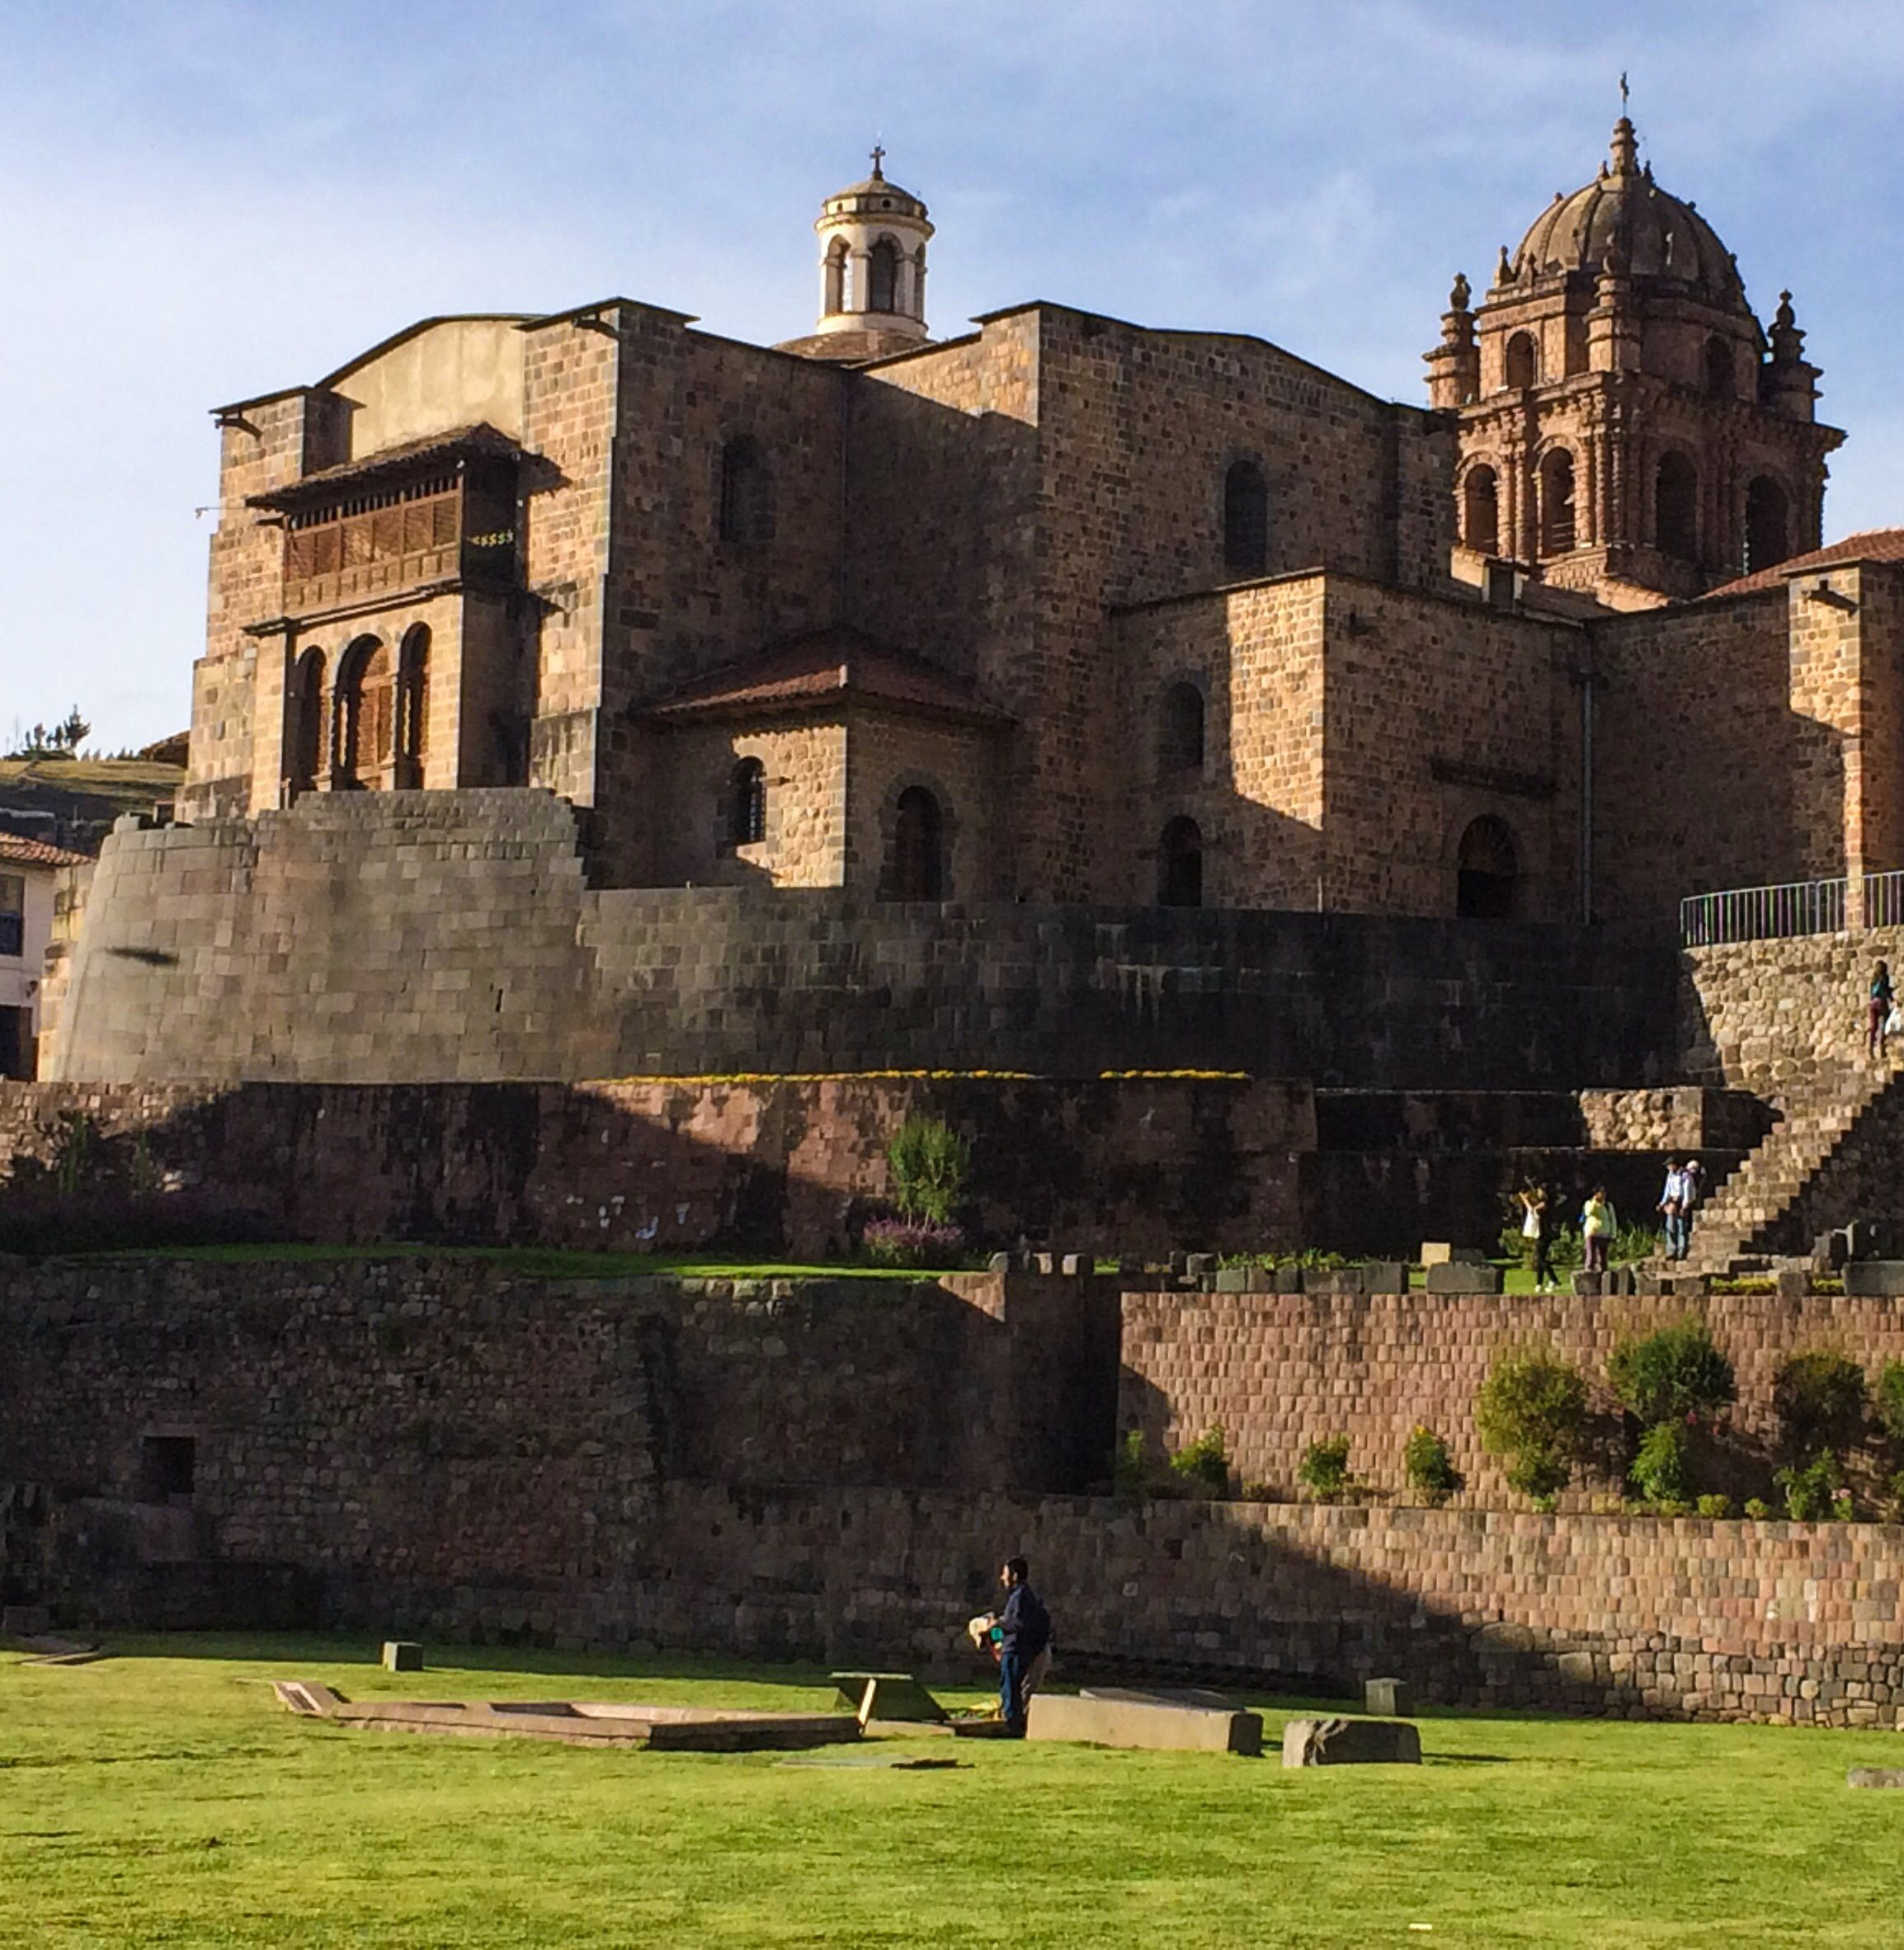 cuzco buddhist singles With the first guided tours were available here january 2016, but now only 2 years later about every single of the hundreds of travel agencies in cusco offer one-day trip, and this natural wonder now sees more than 1000 tourists a day.